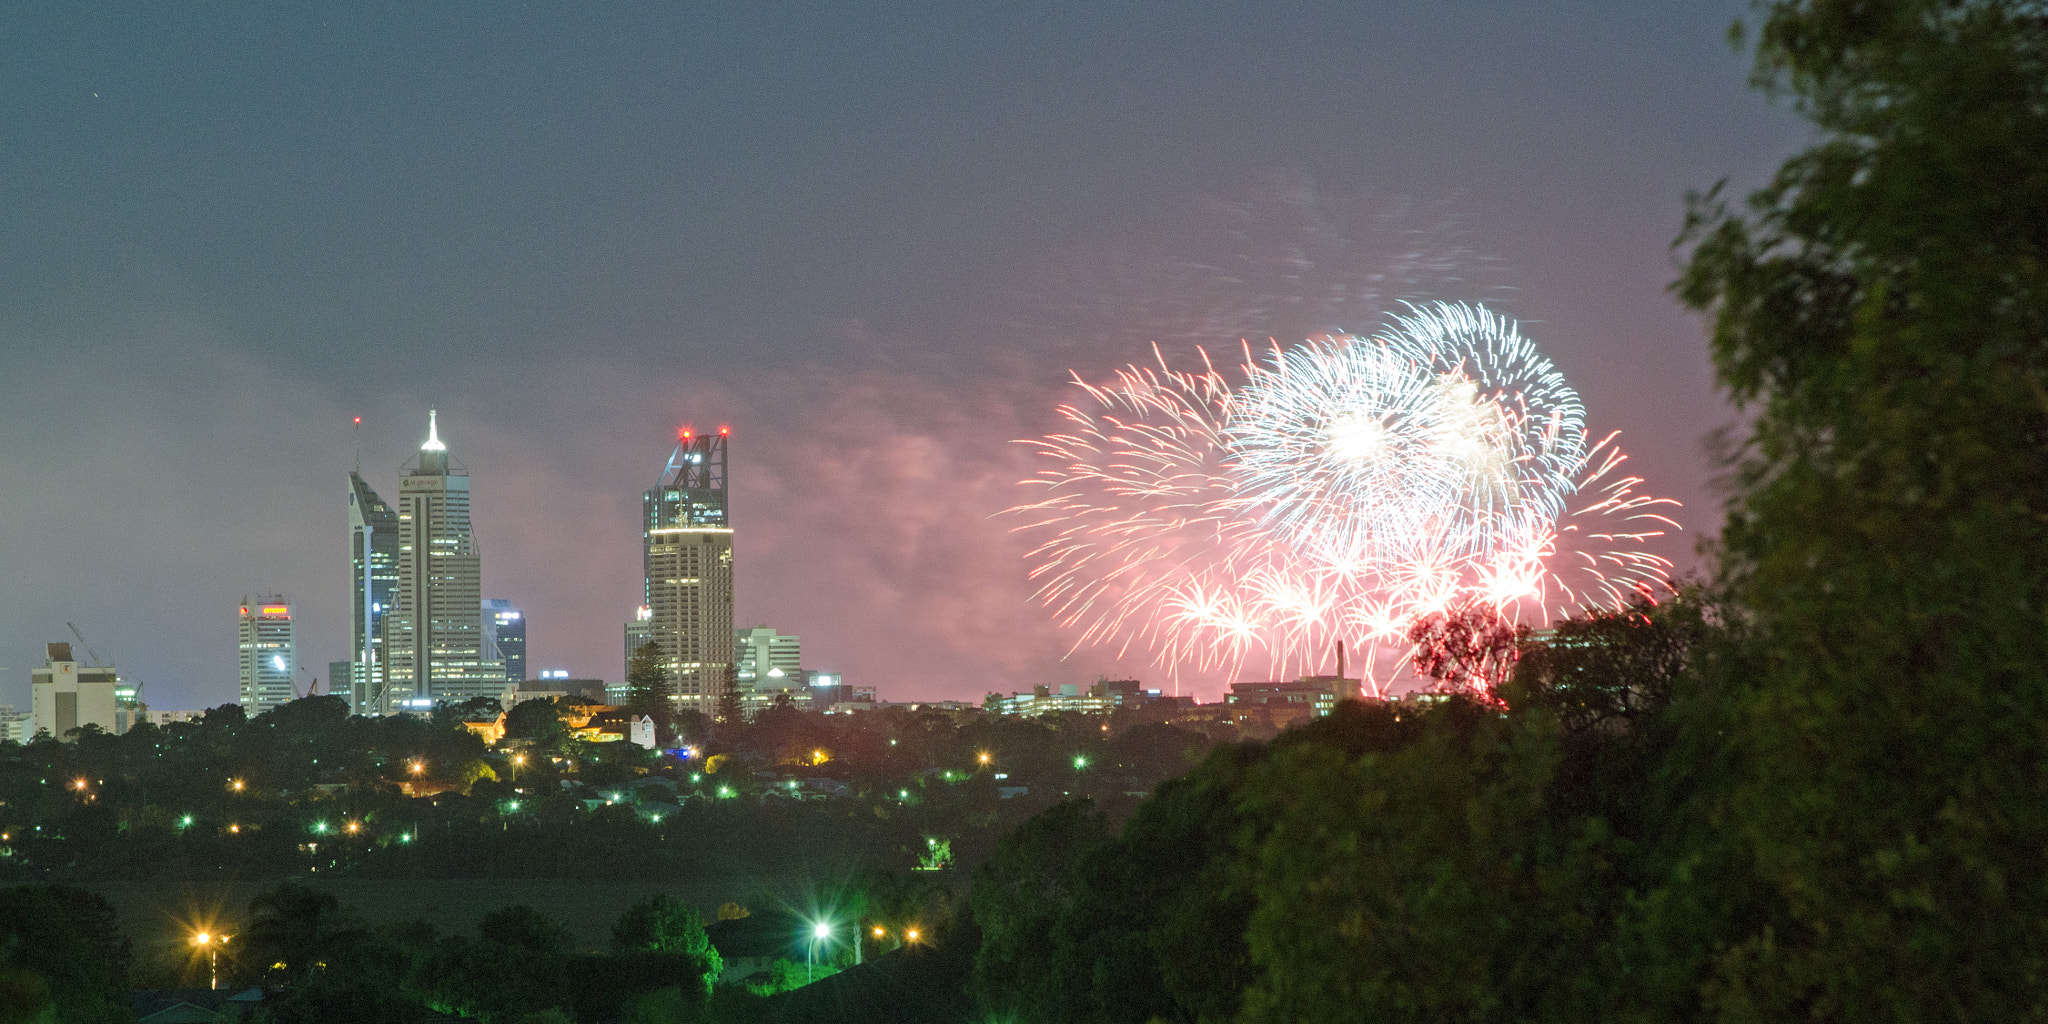 Photograph Australia Day fireworks in Perth by Peter Field on 500px